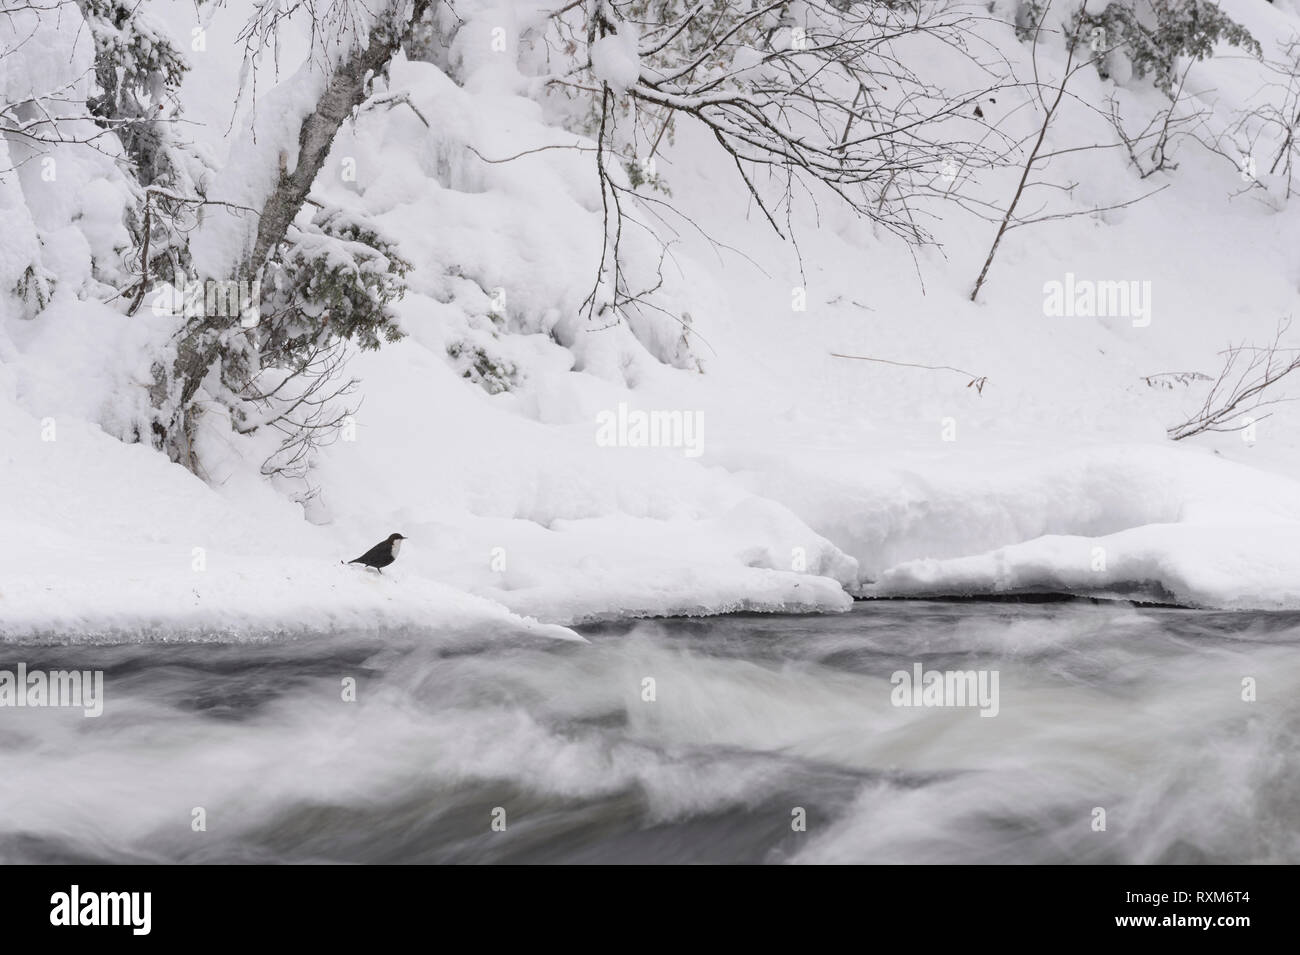 Dipper on the frozen bank of a wild streaming river in an winter landscape with snow and trees on the shore, Kuusamo, Finland - Stock Image